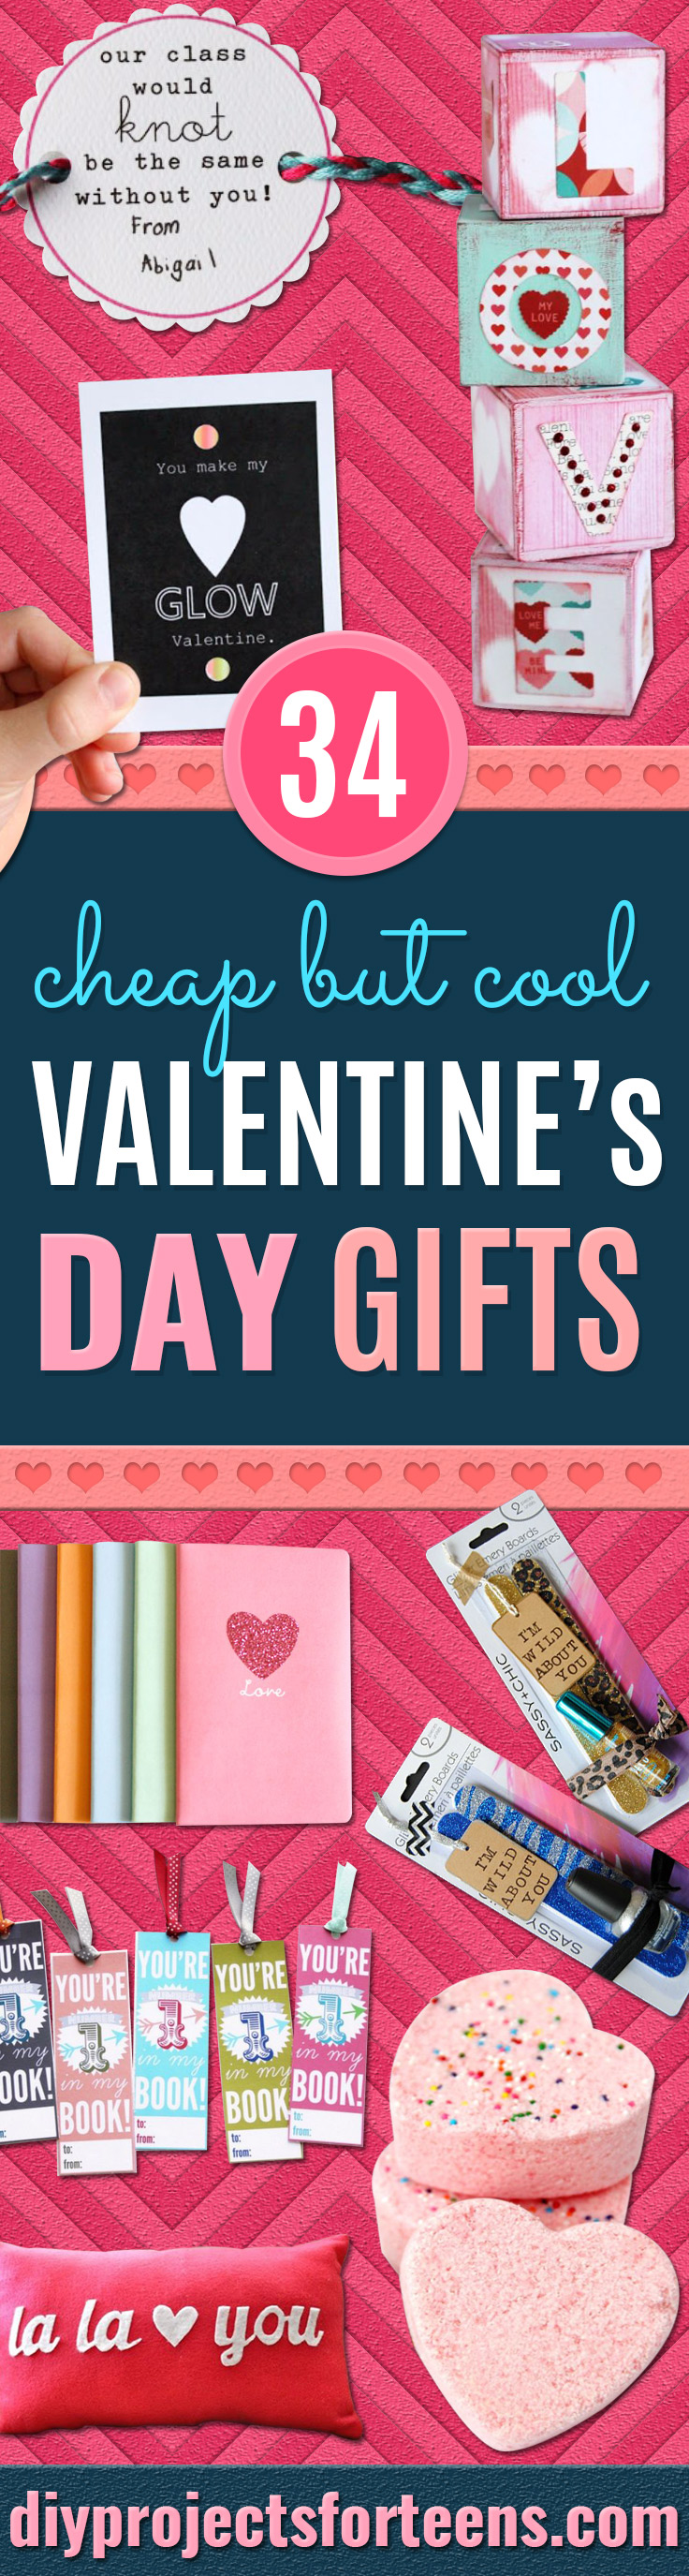 Cheap DIY Valentine's Day Gift Ideas - Make These Easy and Inexpensive Crafts and Valentine Projects - Cute Dollar Store Ideas, Tutorials for Making Jars, Gift Boxes, Pink Red and Heart Shaped Decor - Creative Ways To Say I Love You to Your BFF, Boyfriend, Girlfriend, Husband, Wife and Kids #diyideas #valentines #cheapgifts #valentinesgifts #valentinesday